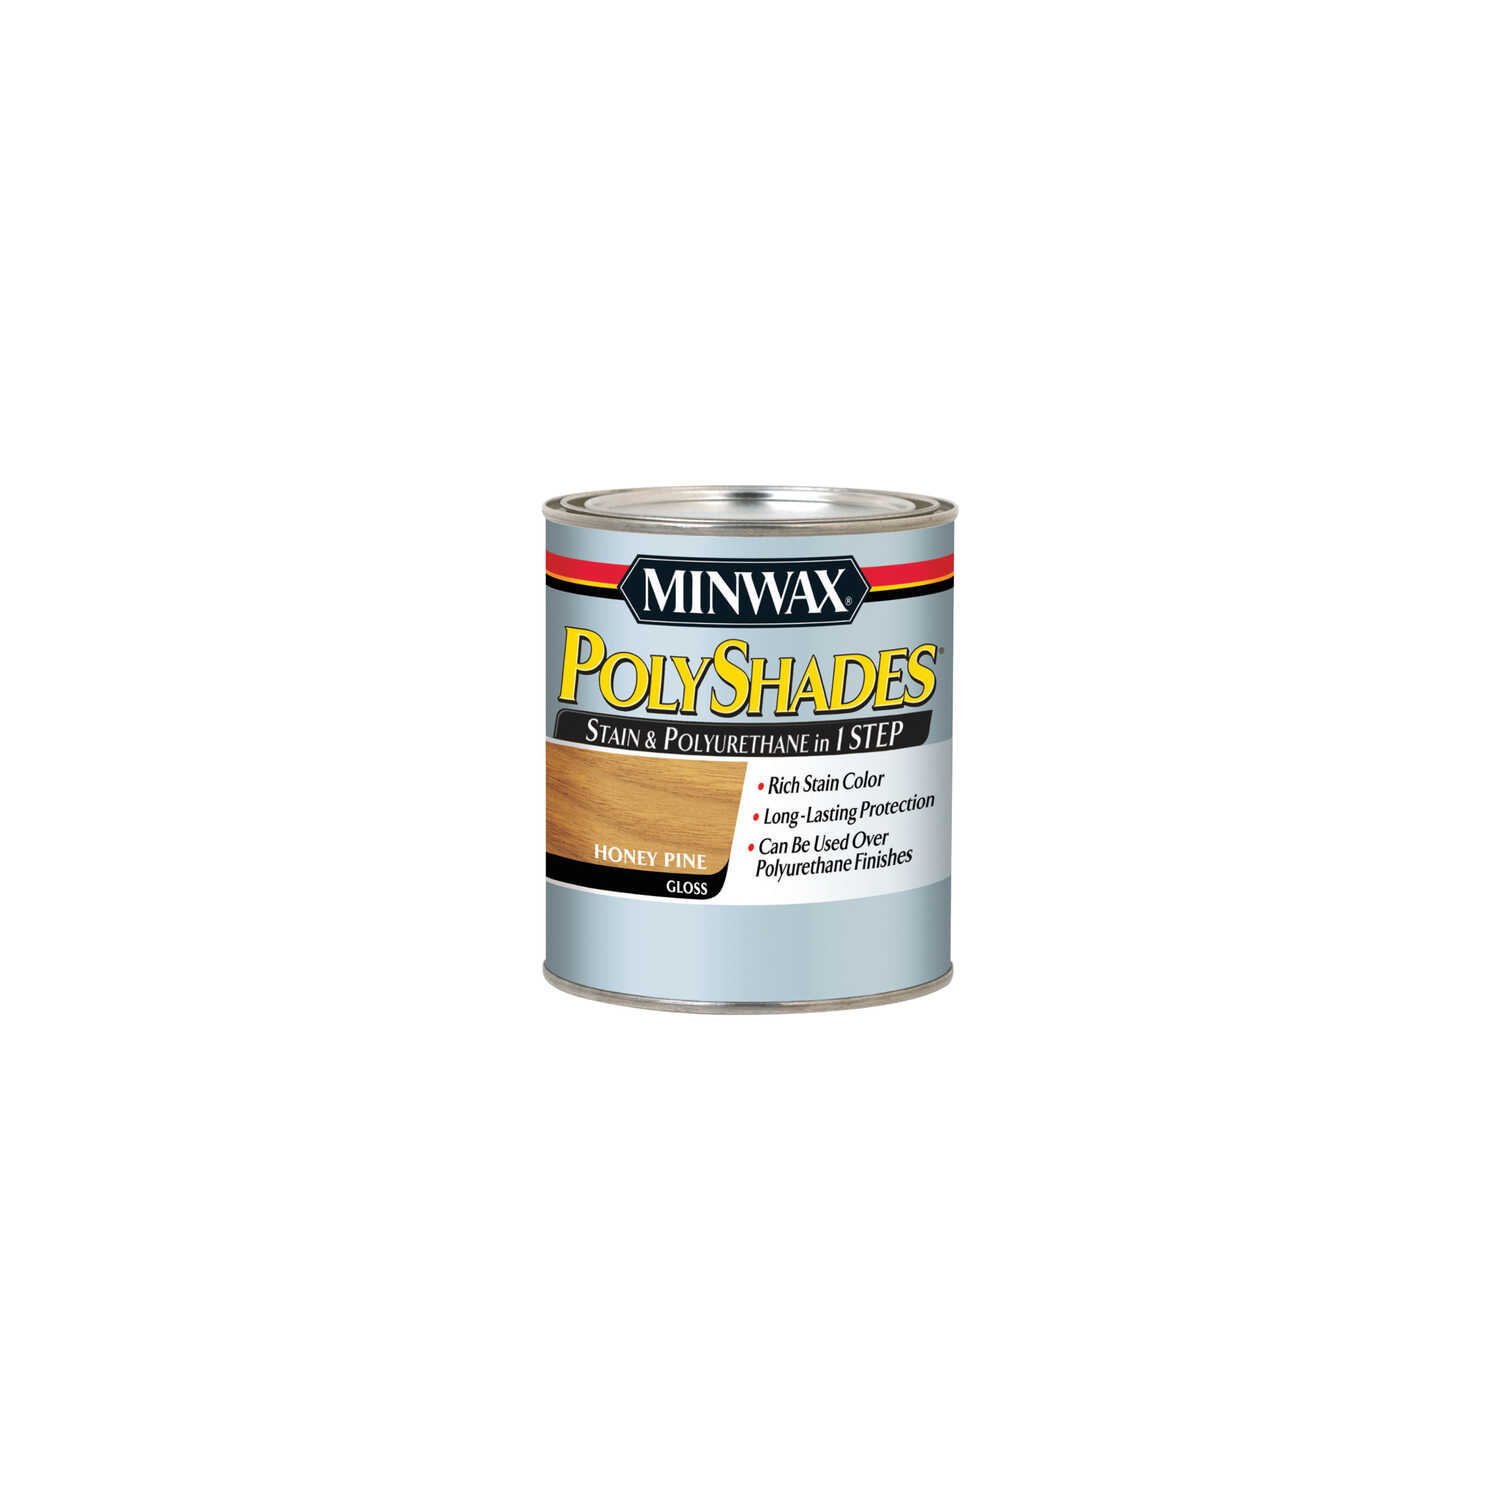 Minwax  PolyShades  Semi-Transparent  Gloss  Honey Pine  Oil-Based  Polyurethane  Stain  0.5 pt.